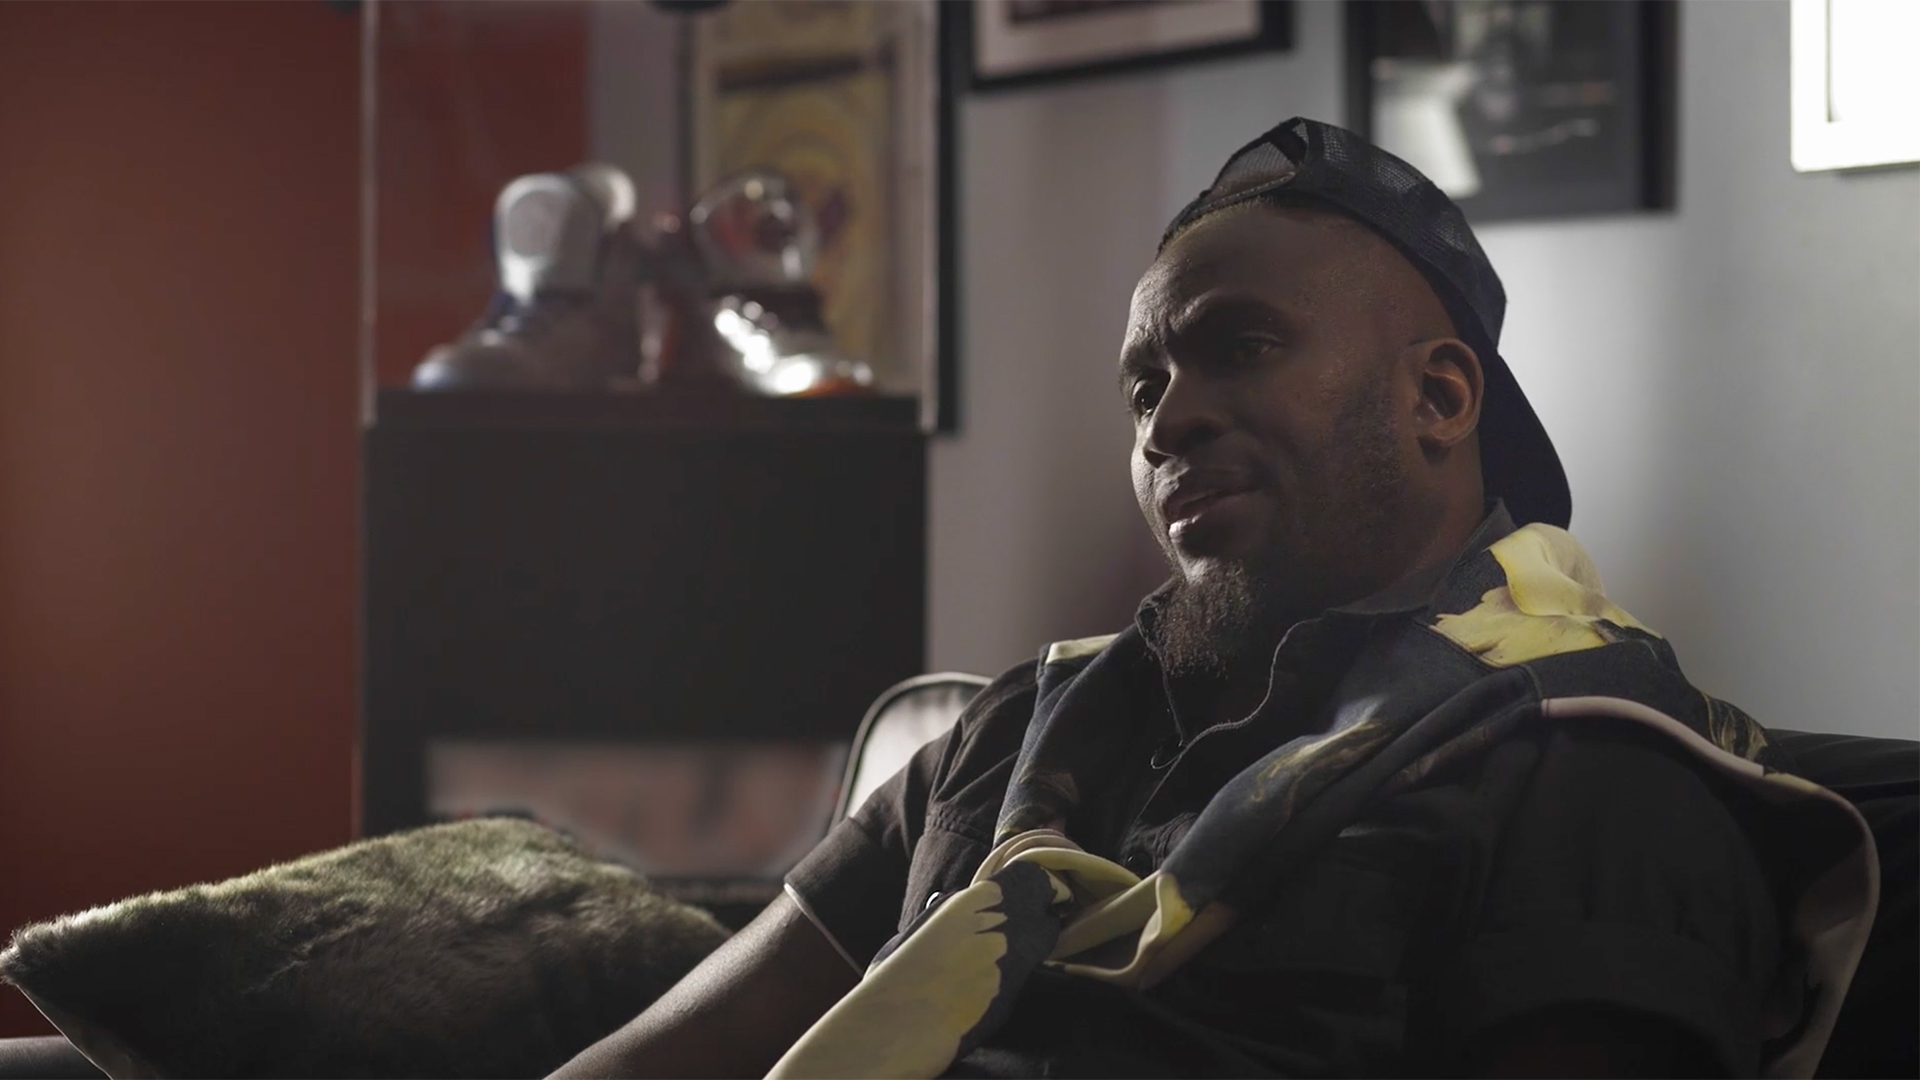 """Anwan """"Big G."""" Glover sits on a couch while filming some branded content for a mini-doc."""